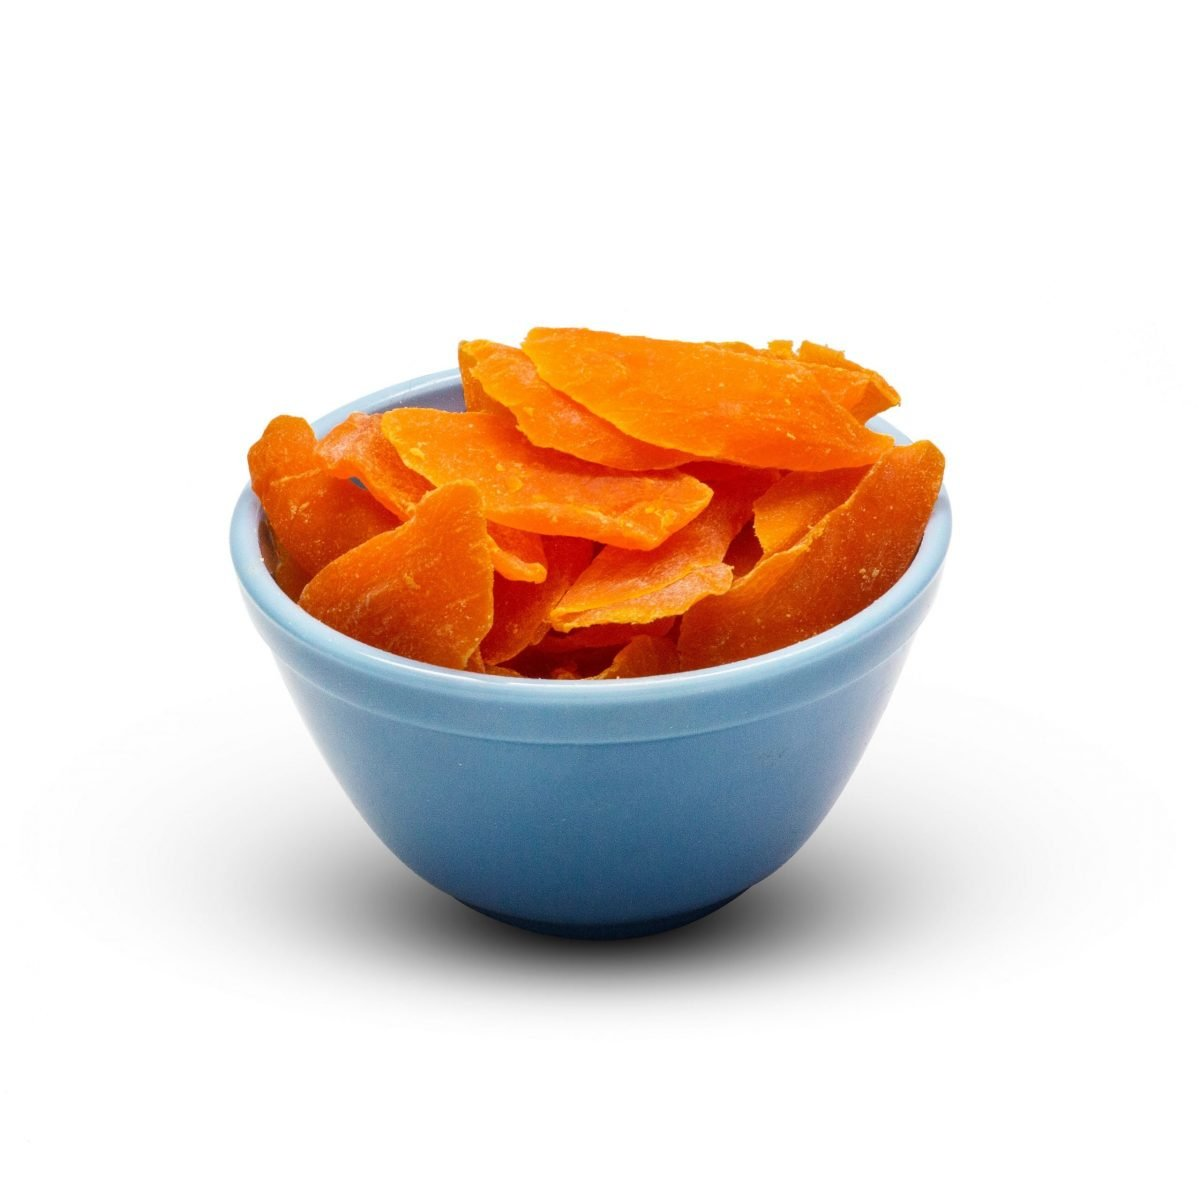 Mango Slices Sweetened With So2 In Bowl Scaled